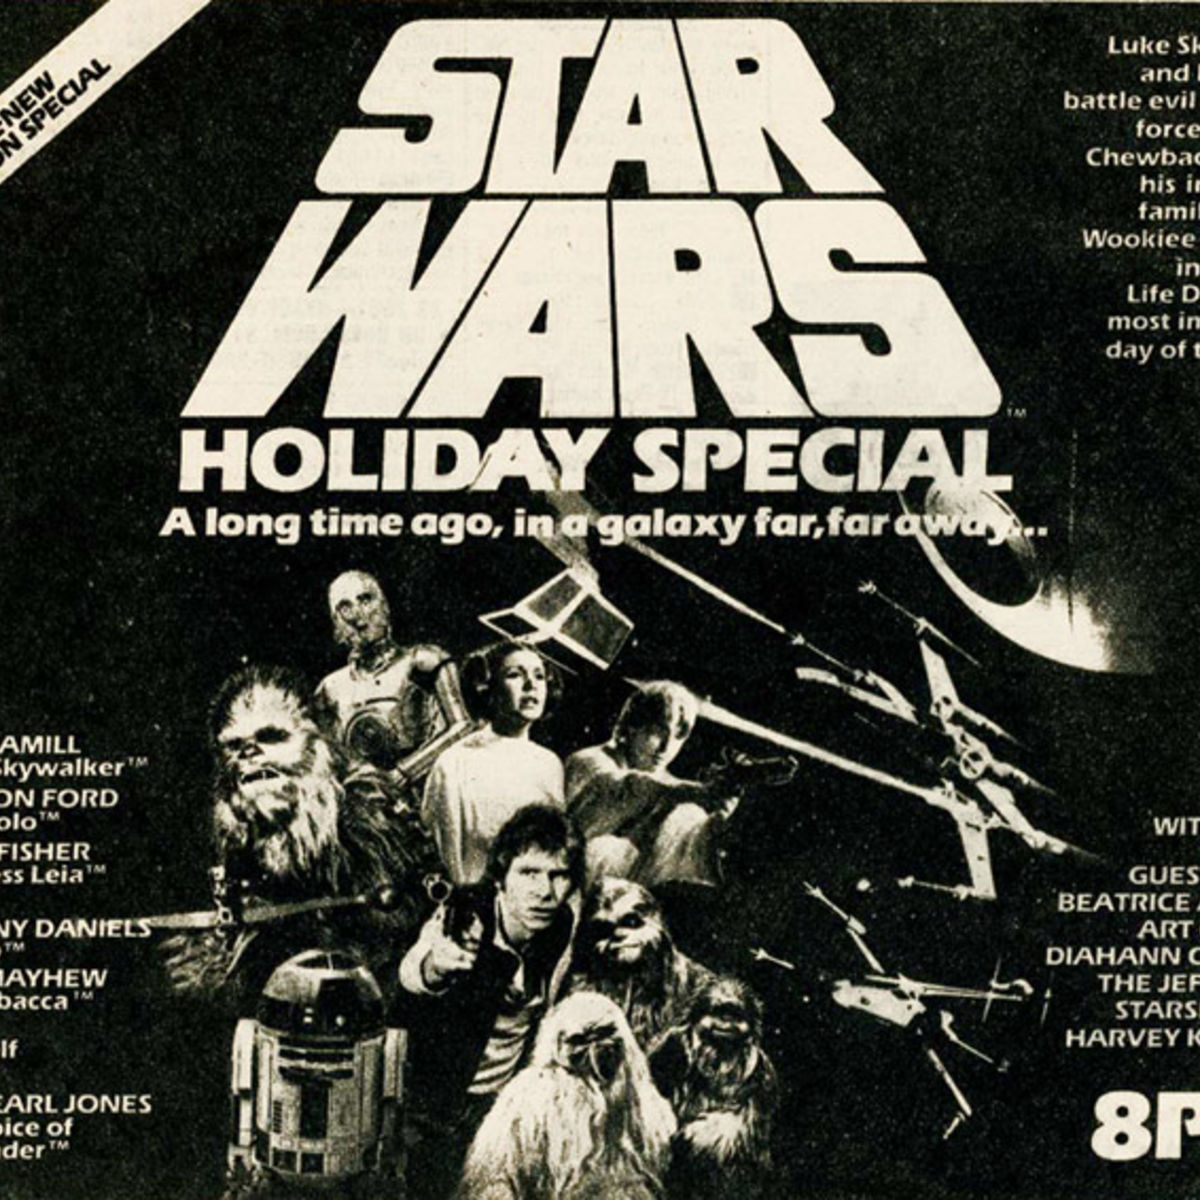 Star Wars Holiday Special.jpg